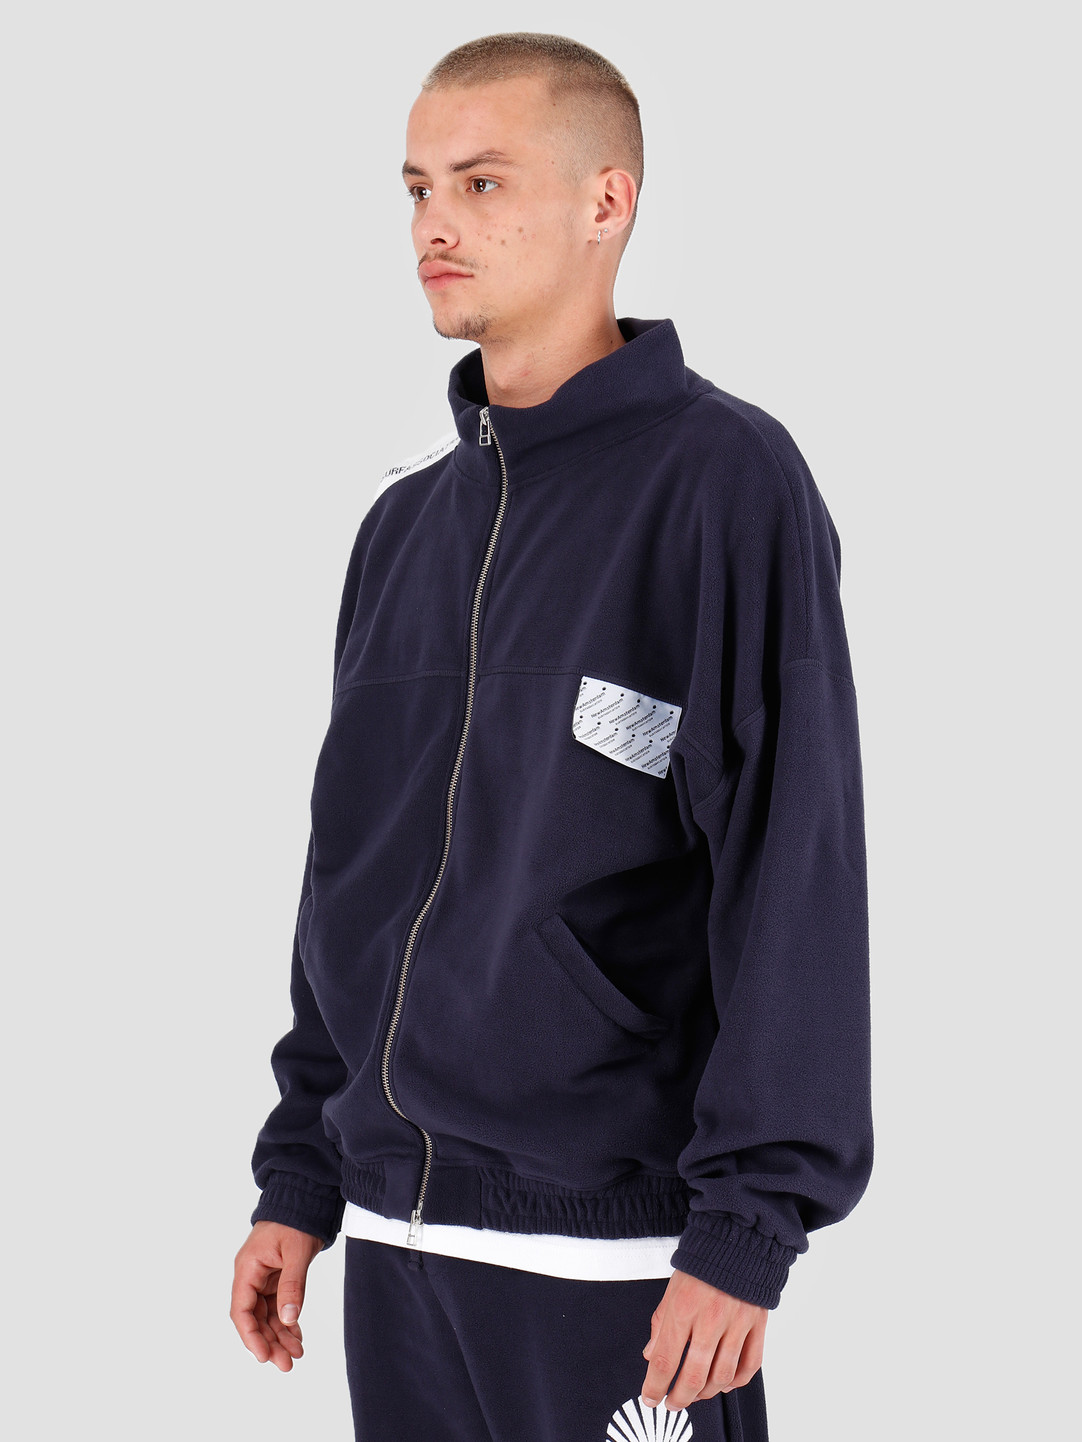 New Amsterdam Surf association New Amsterdam Surf association Dry Suit Jacket Deep Navy 2018009